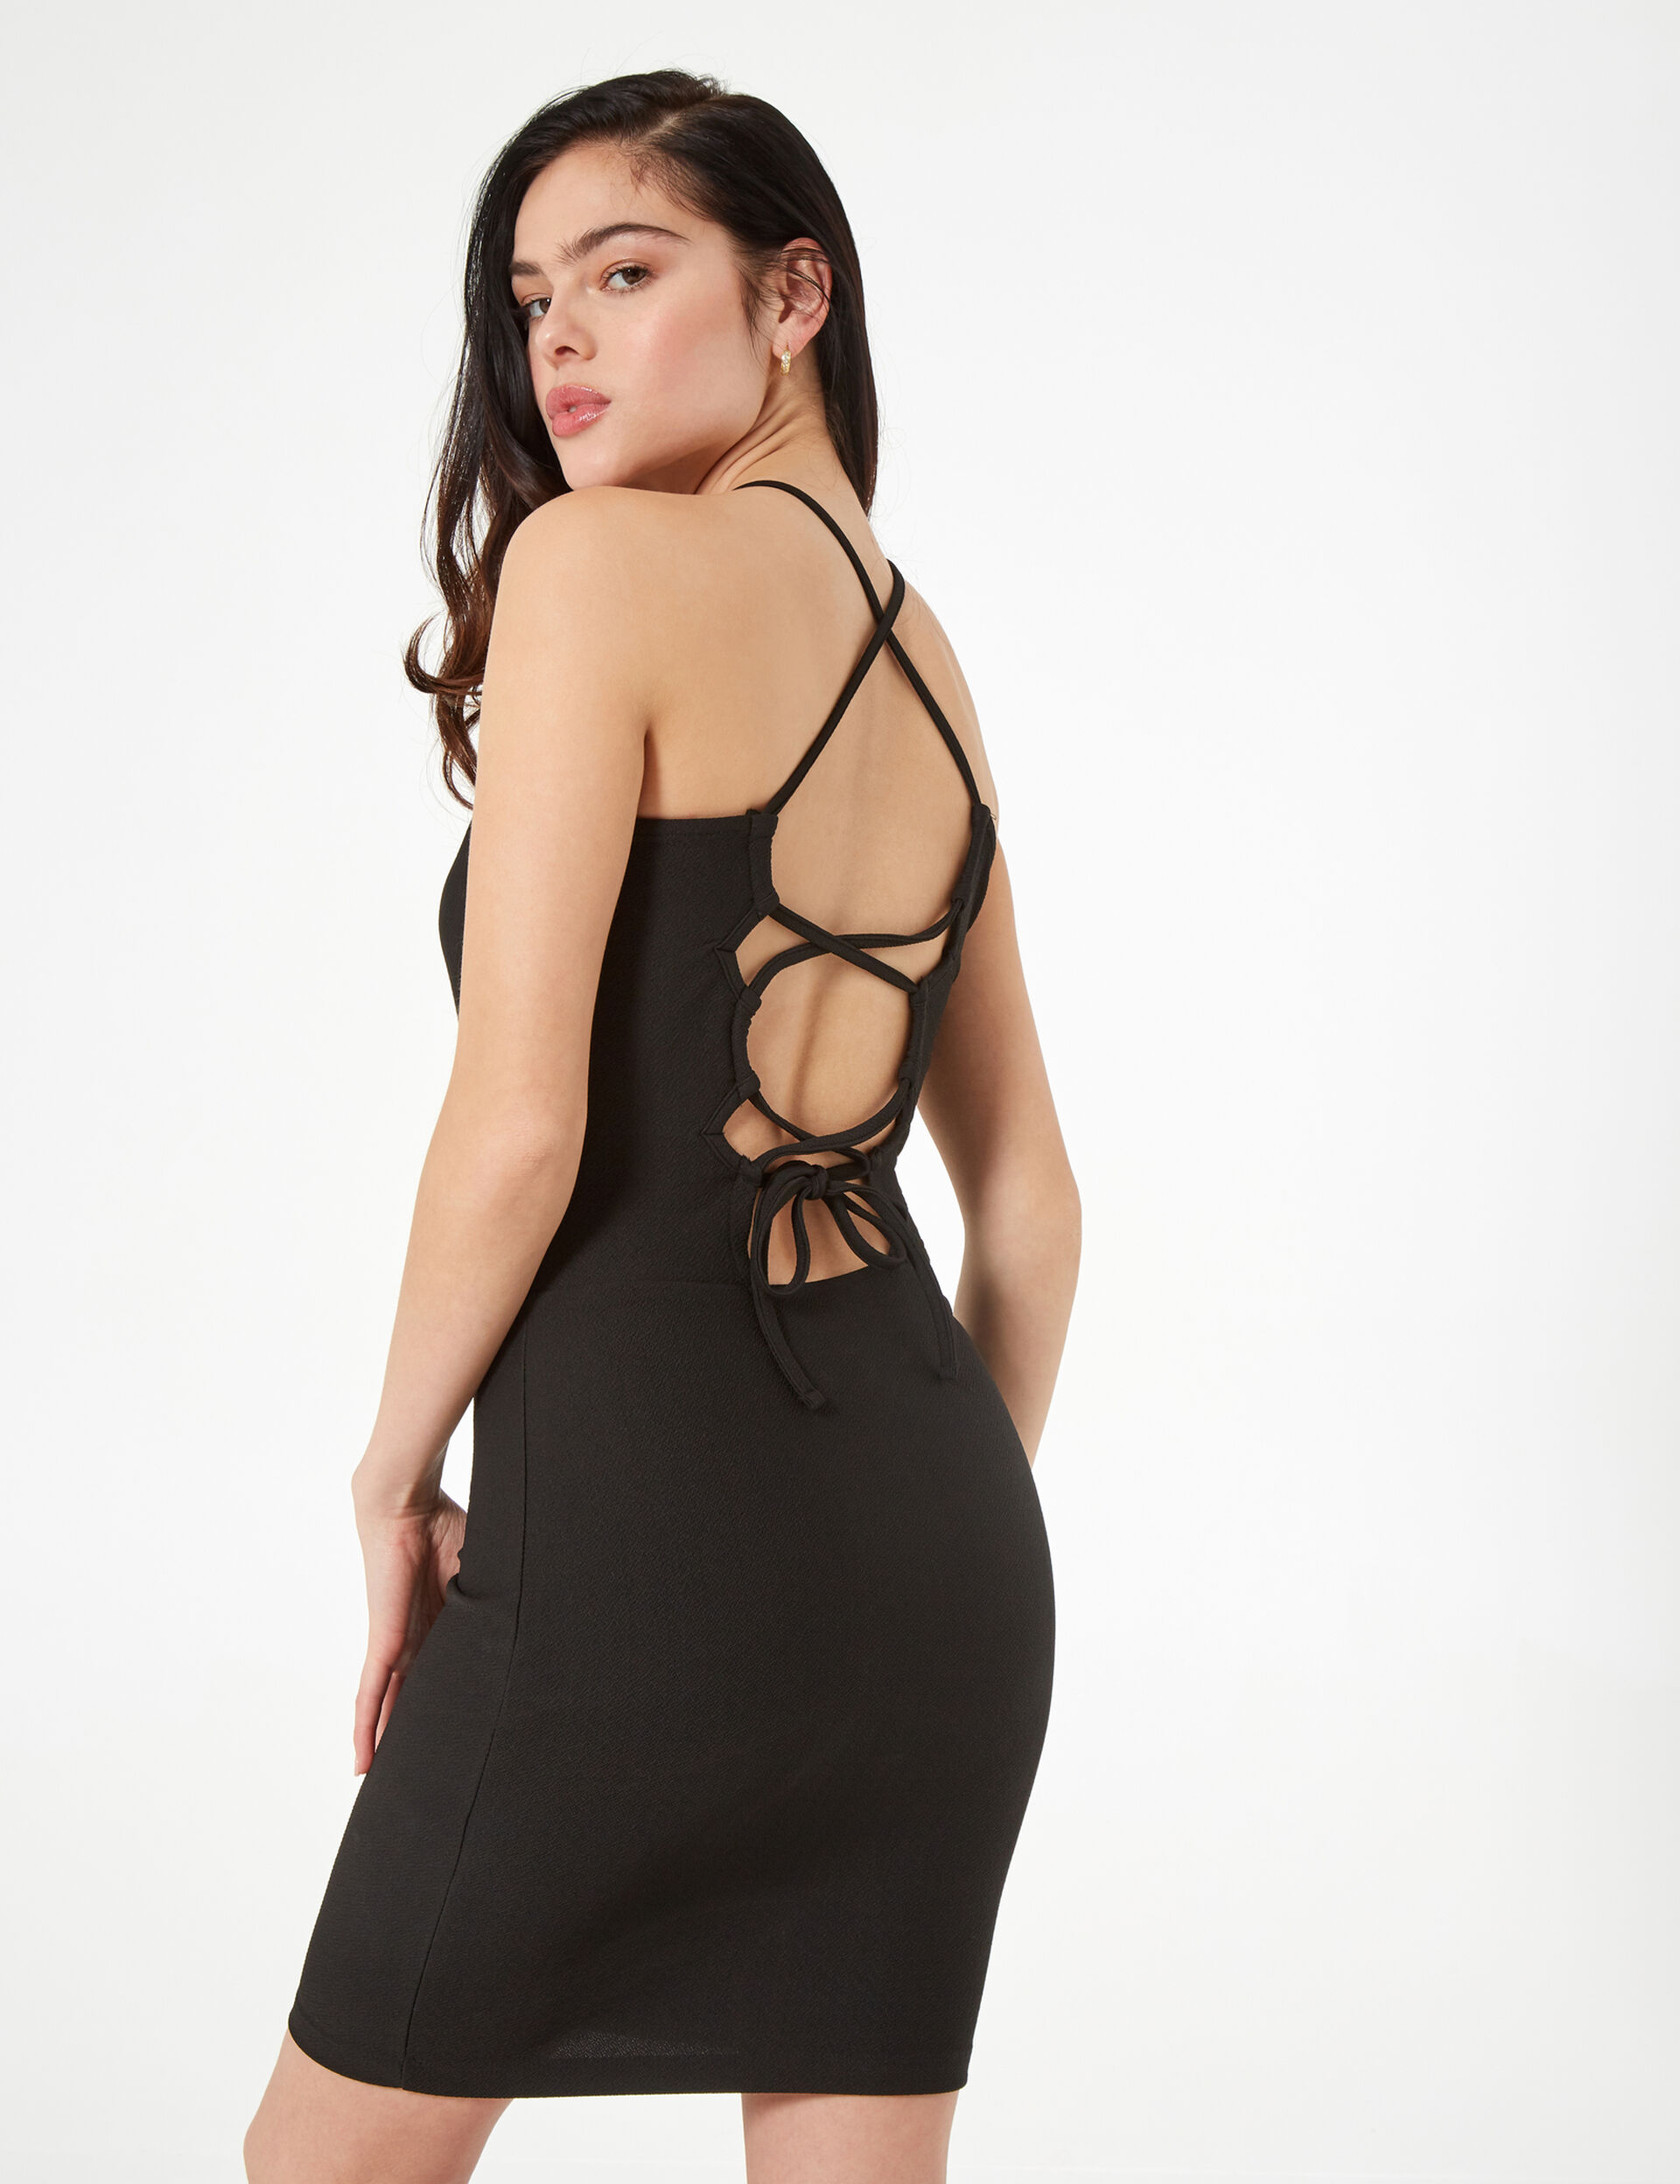 Body-hugging dress with ties